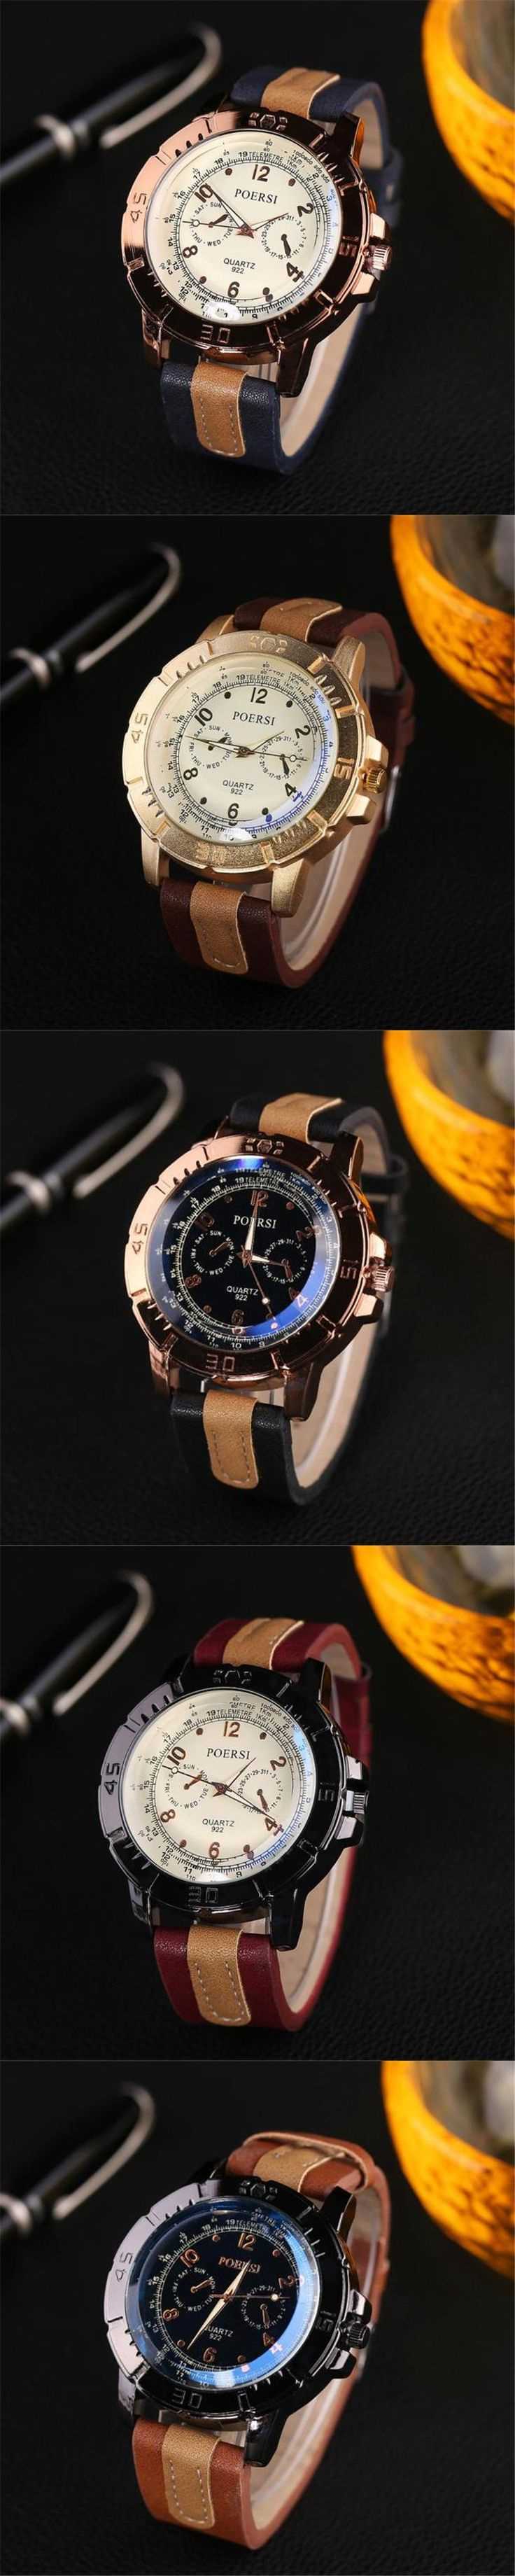 relogio crystal feminino brand quartz in men casual femme women longbo wrist watches montre item brief watch luxury from